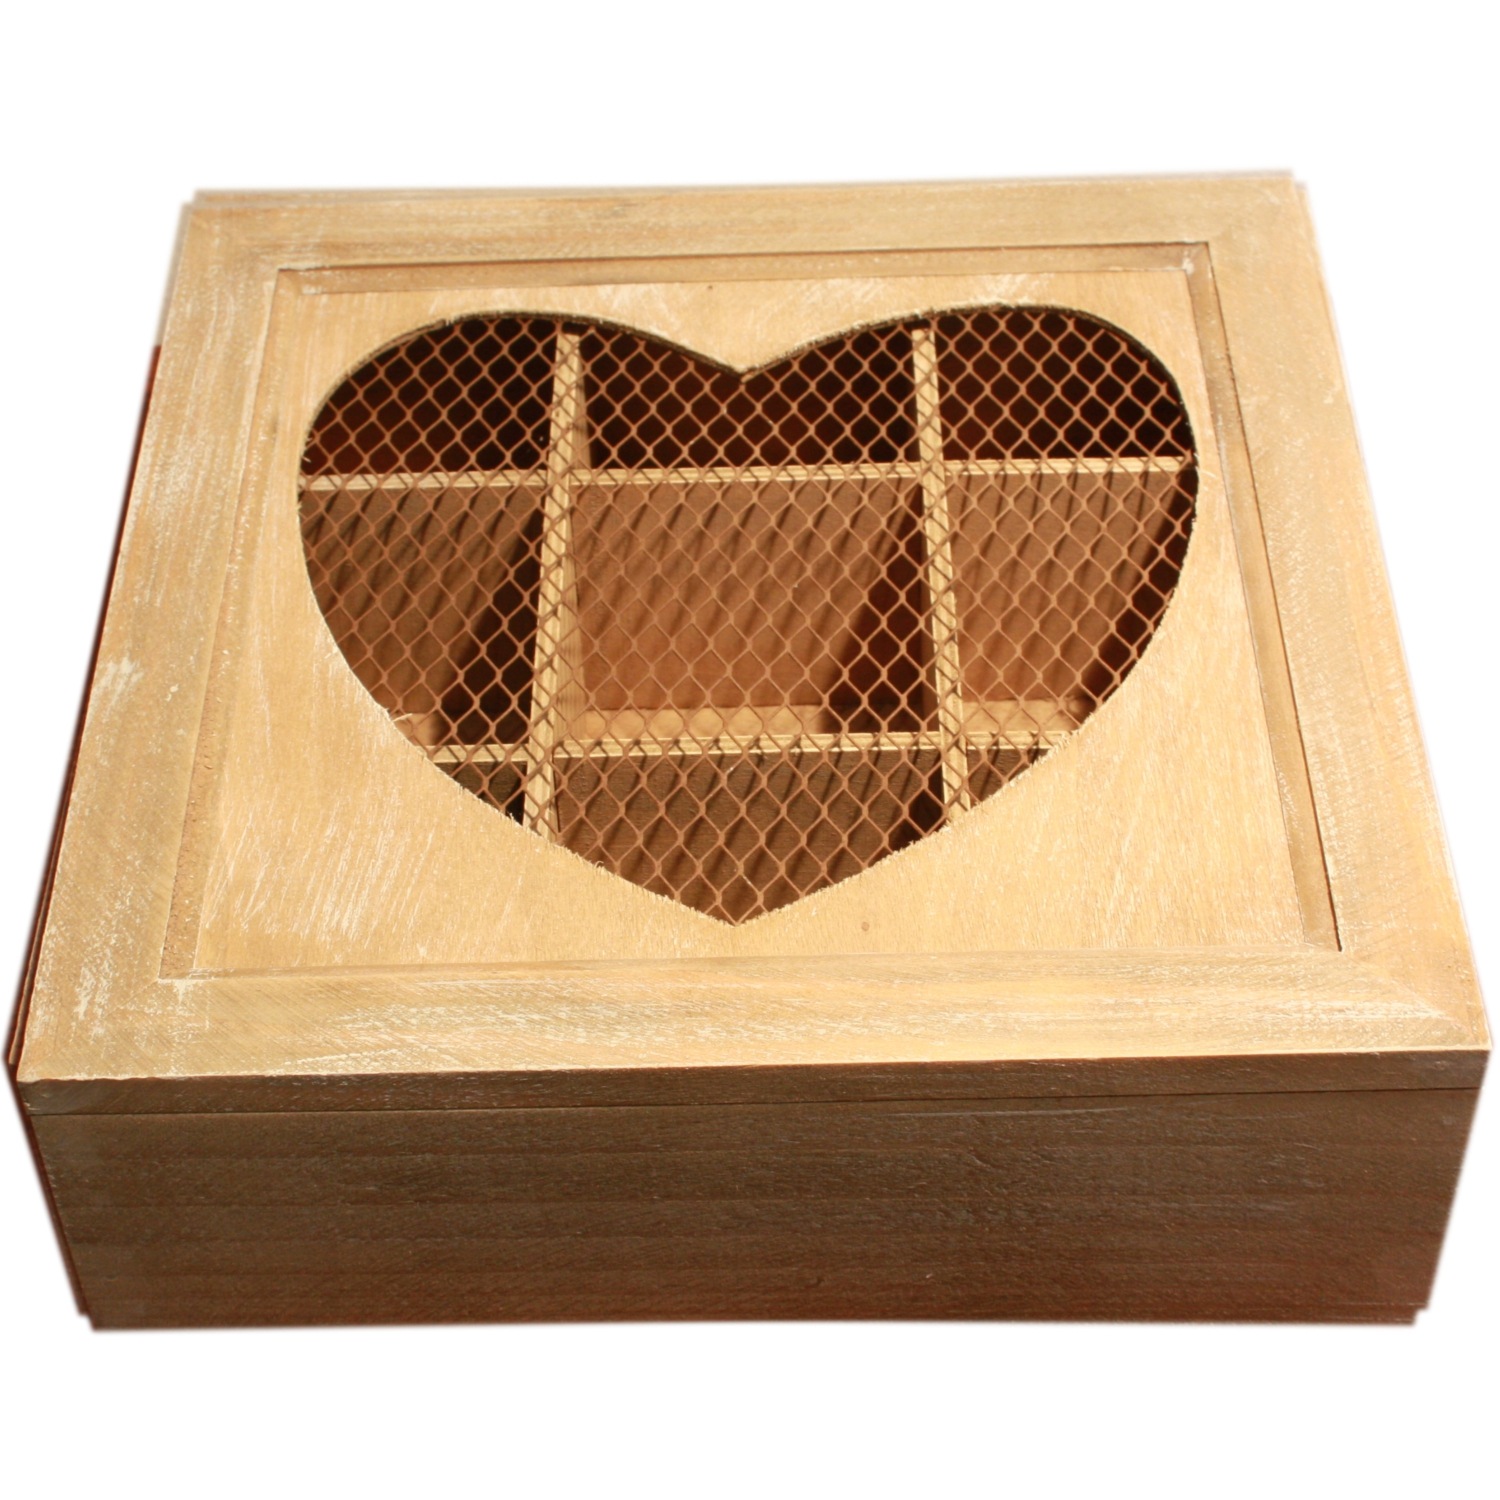 Rustic Vintage Heart Design Tea Box in Natural Finish